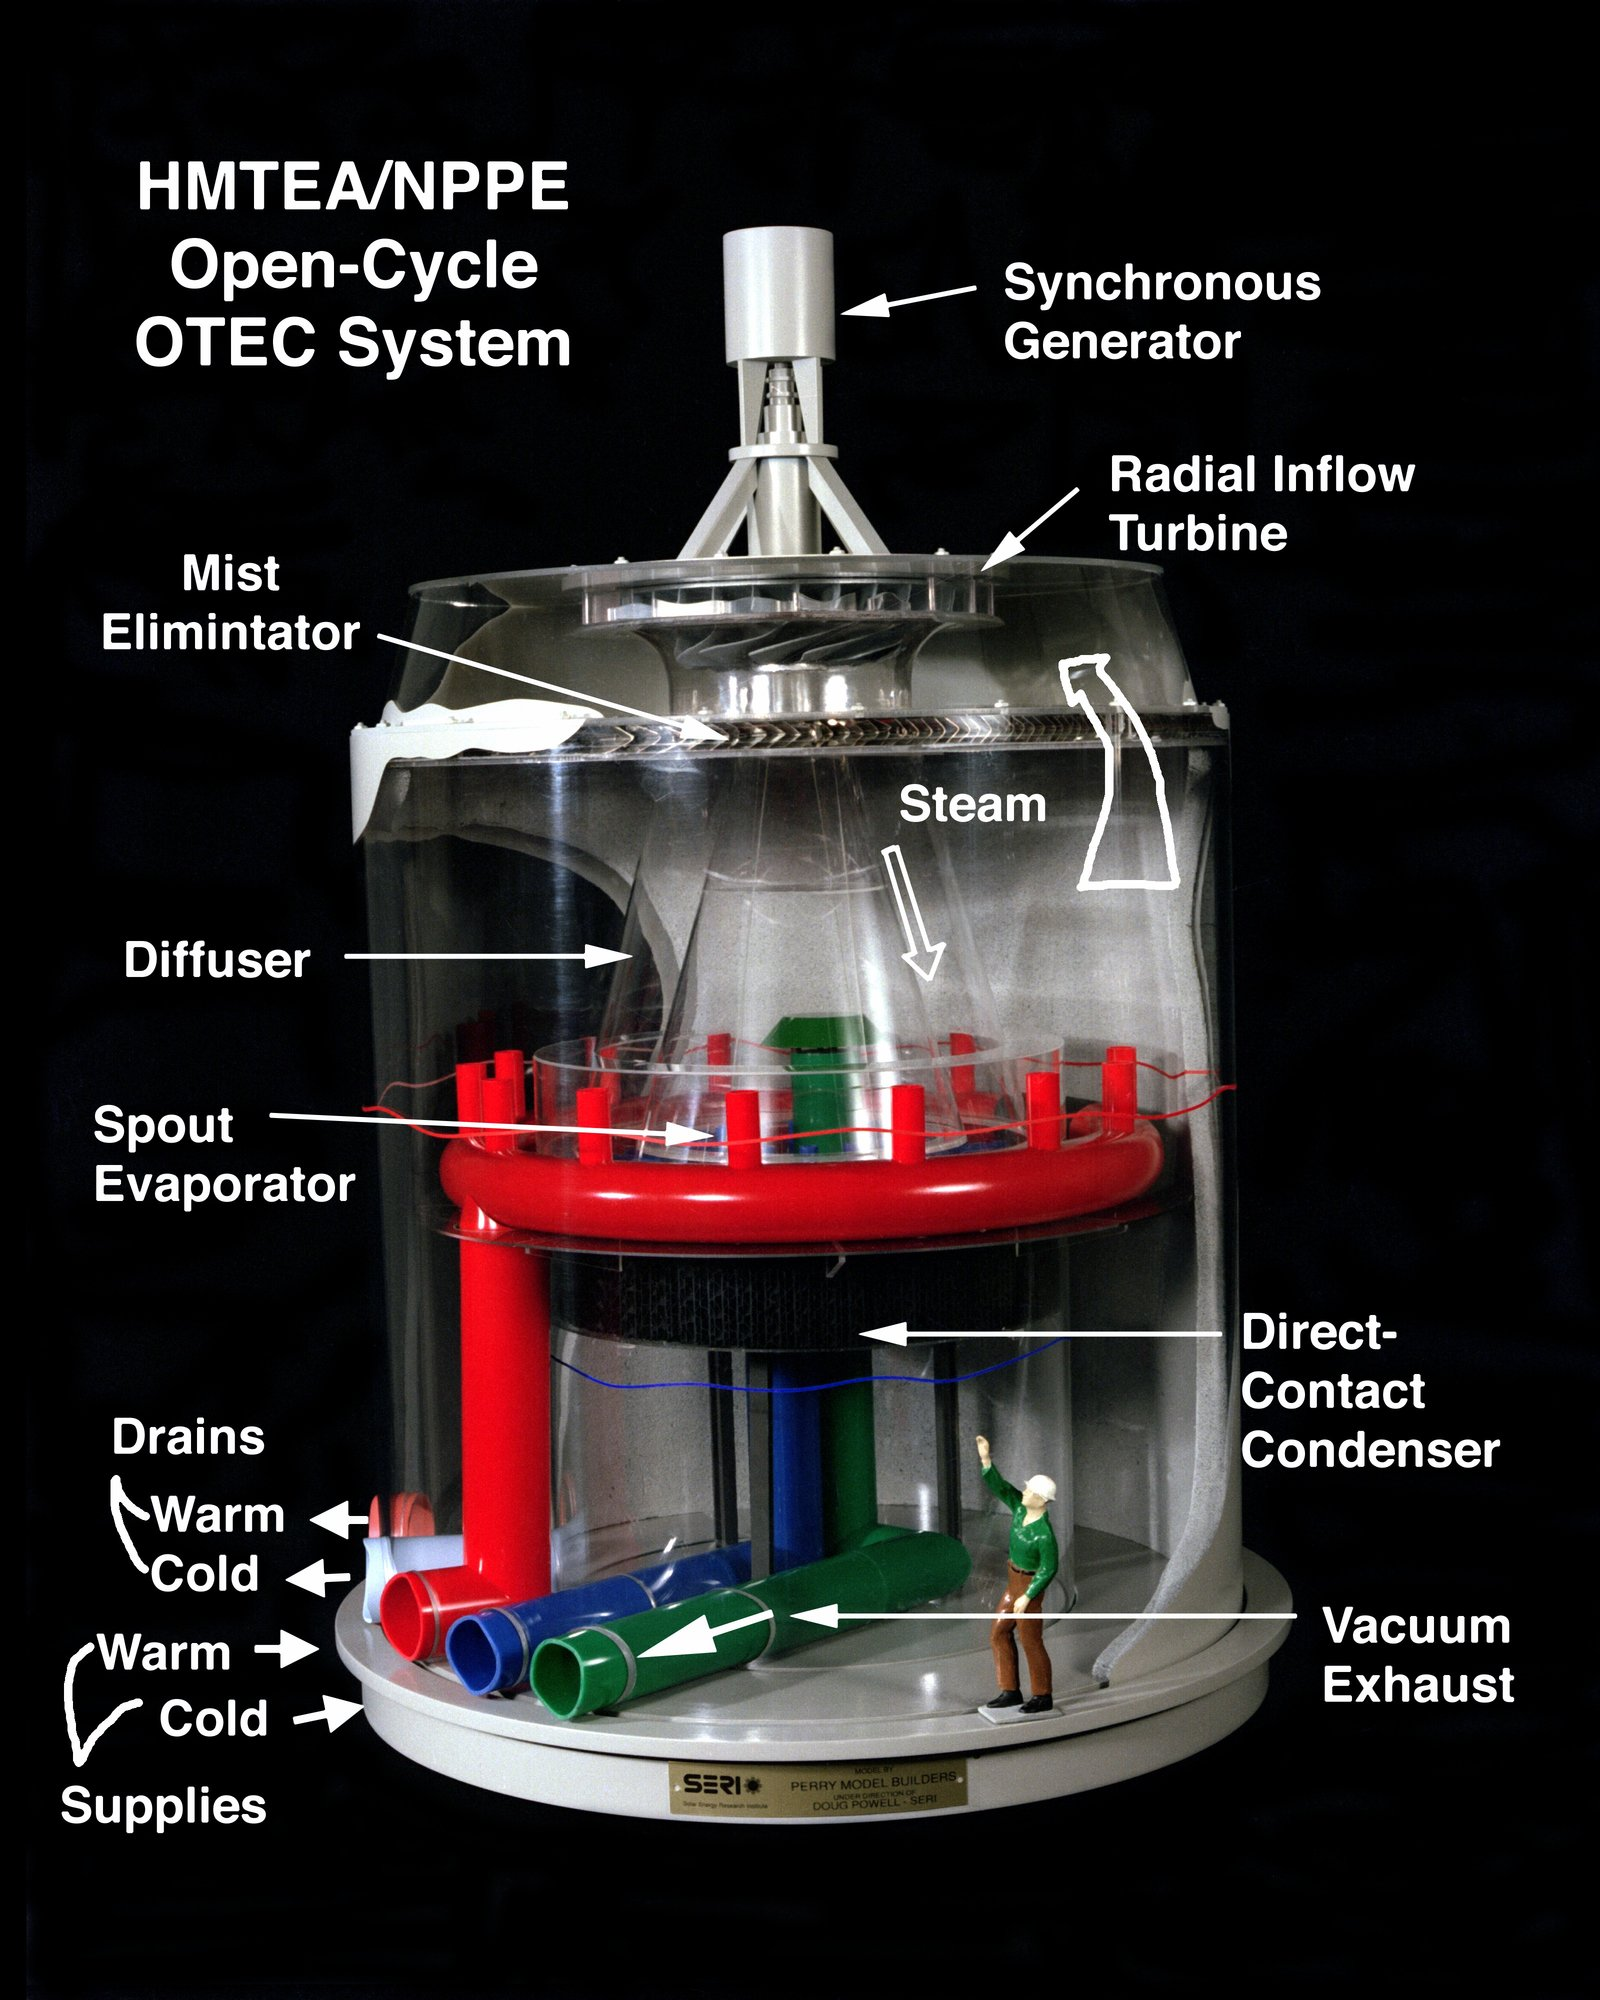 While the sun warms the surface of tropical waters to 80 degrees F, at depths of 5000 feet temperatures are near freezing. This temperature differential is key to the open-cycle OTEC process, in which warm surface water is pumped to a vacuum chamber to produce steam that drives a turbine. At the same time, a heat exchanger uses cold water pumped from the depths to condense spent steam into drinkable water. OTEC, therefore, desalinates water as well as produces electricity.